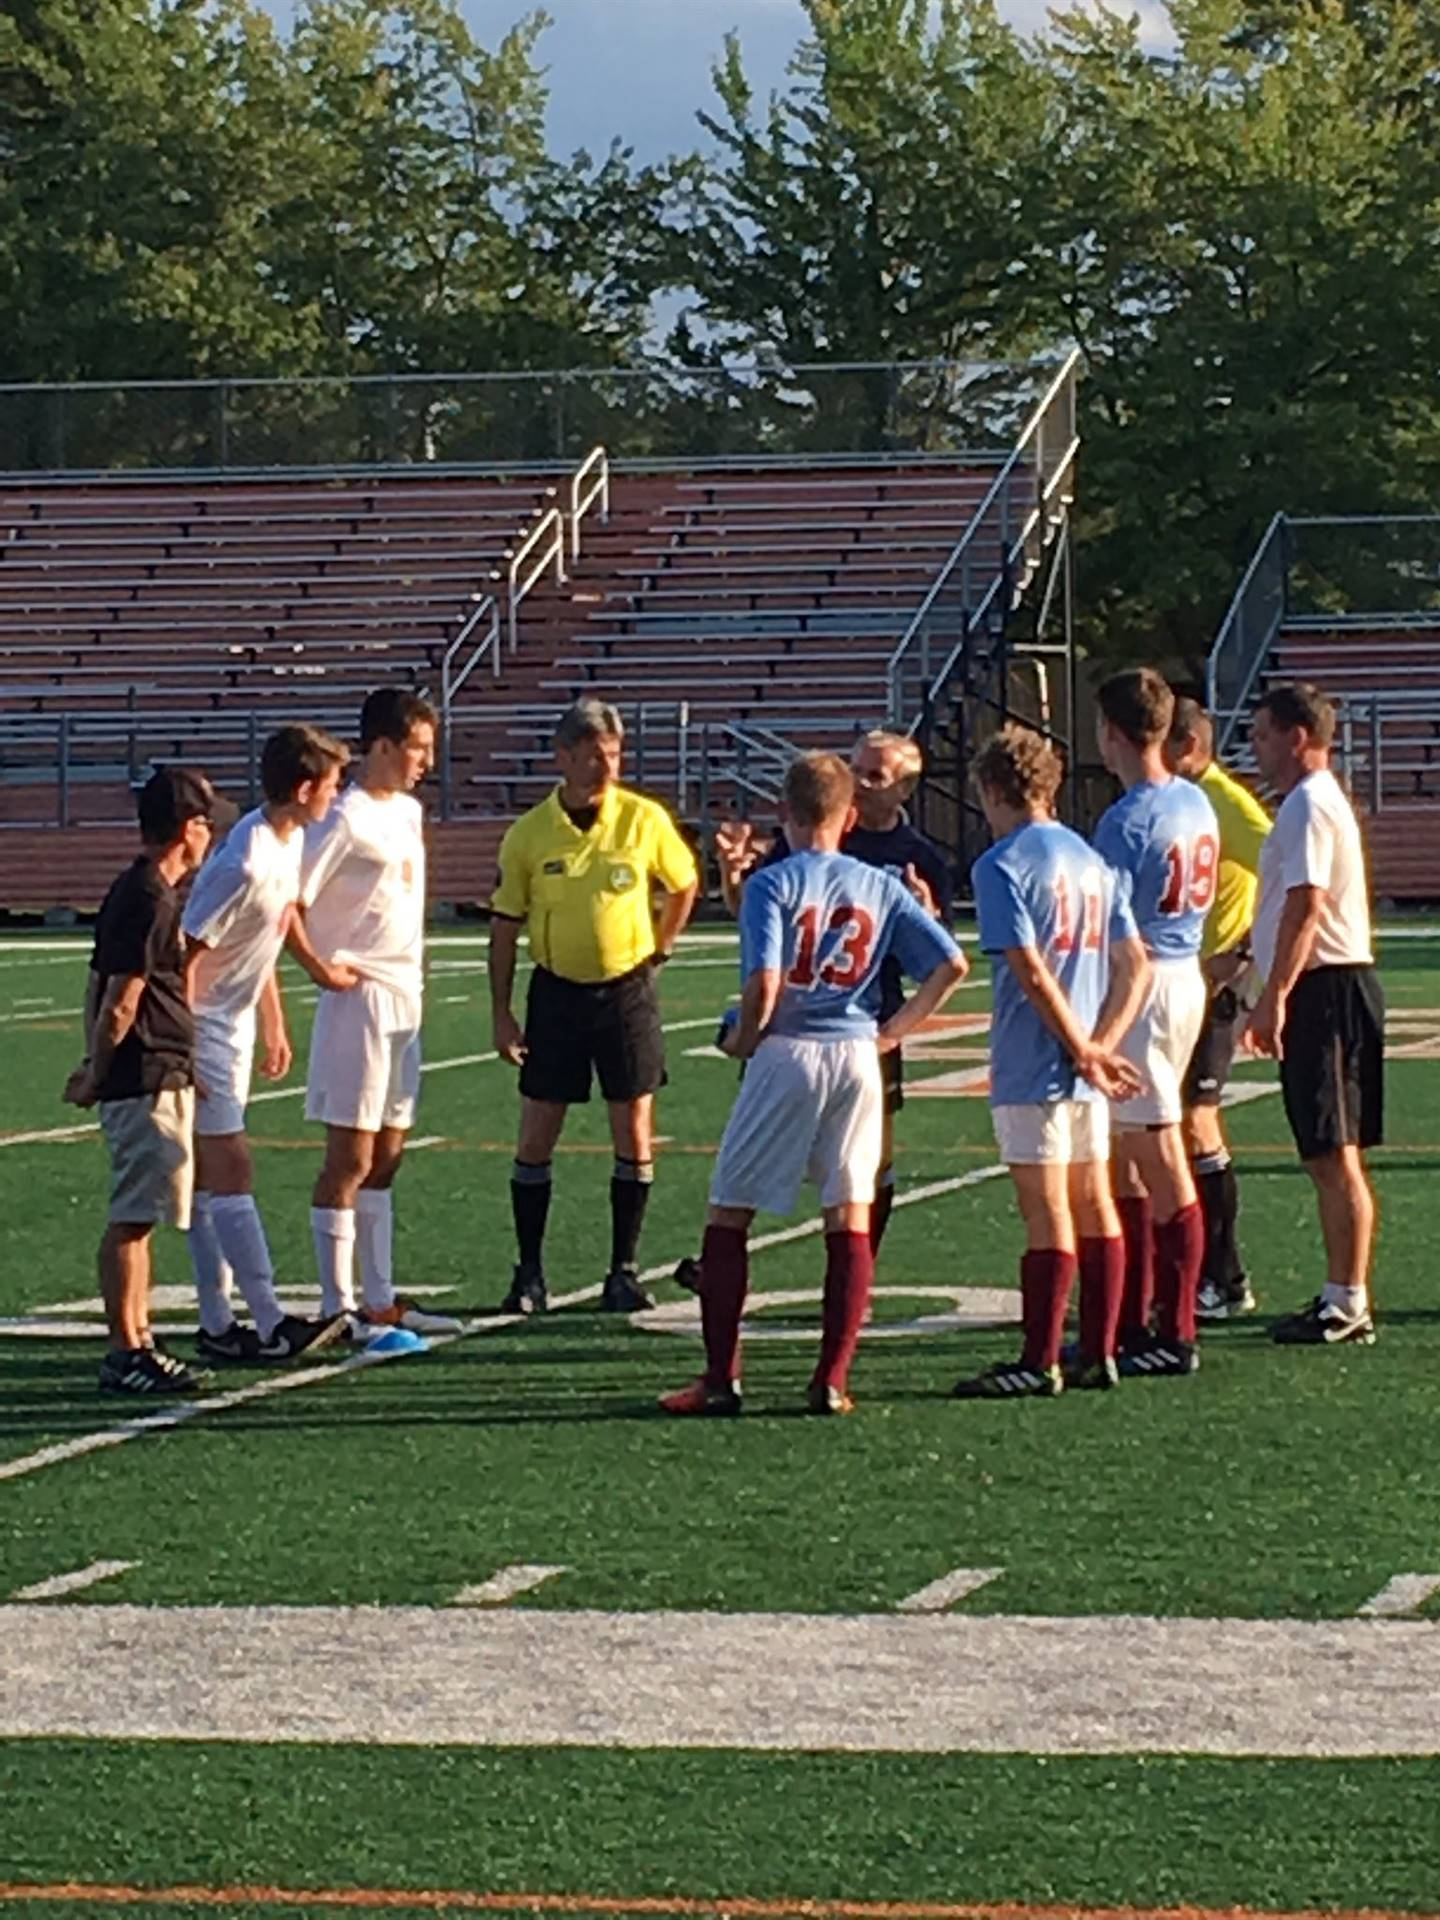 The Chagrin Falls and River Varsity captains and coaches attend the pregame talk and coin toss.